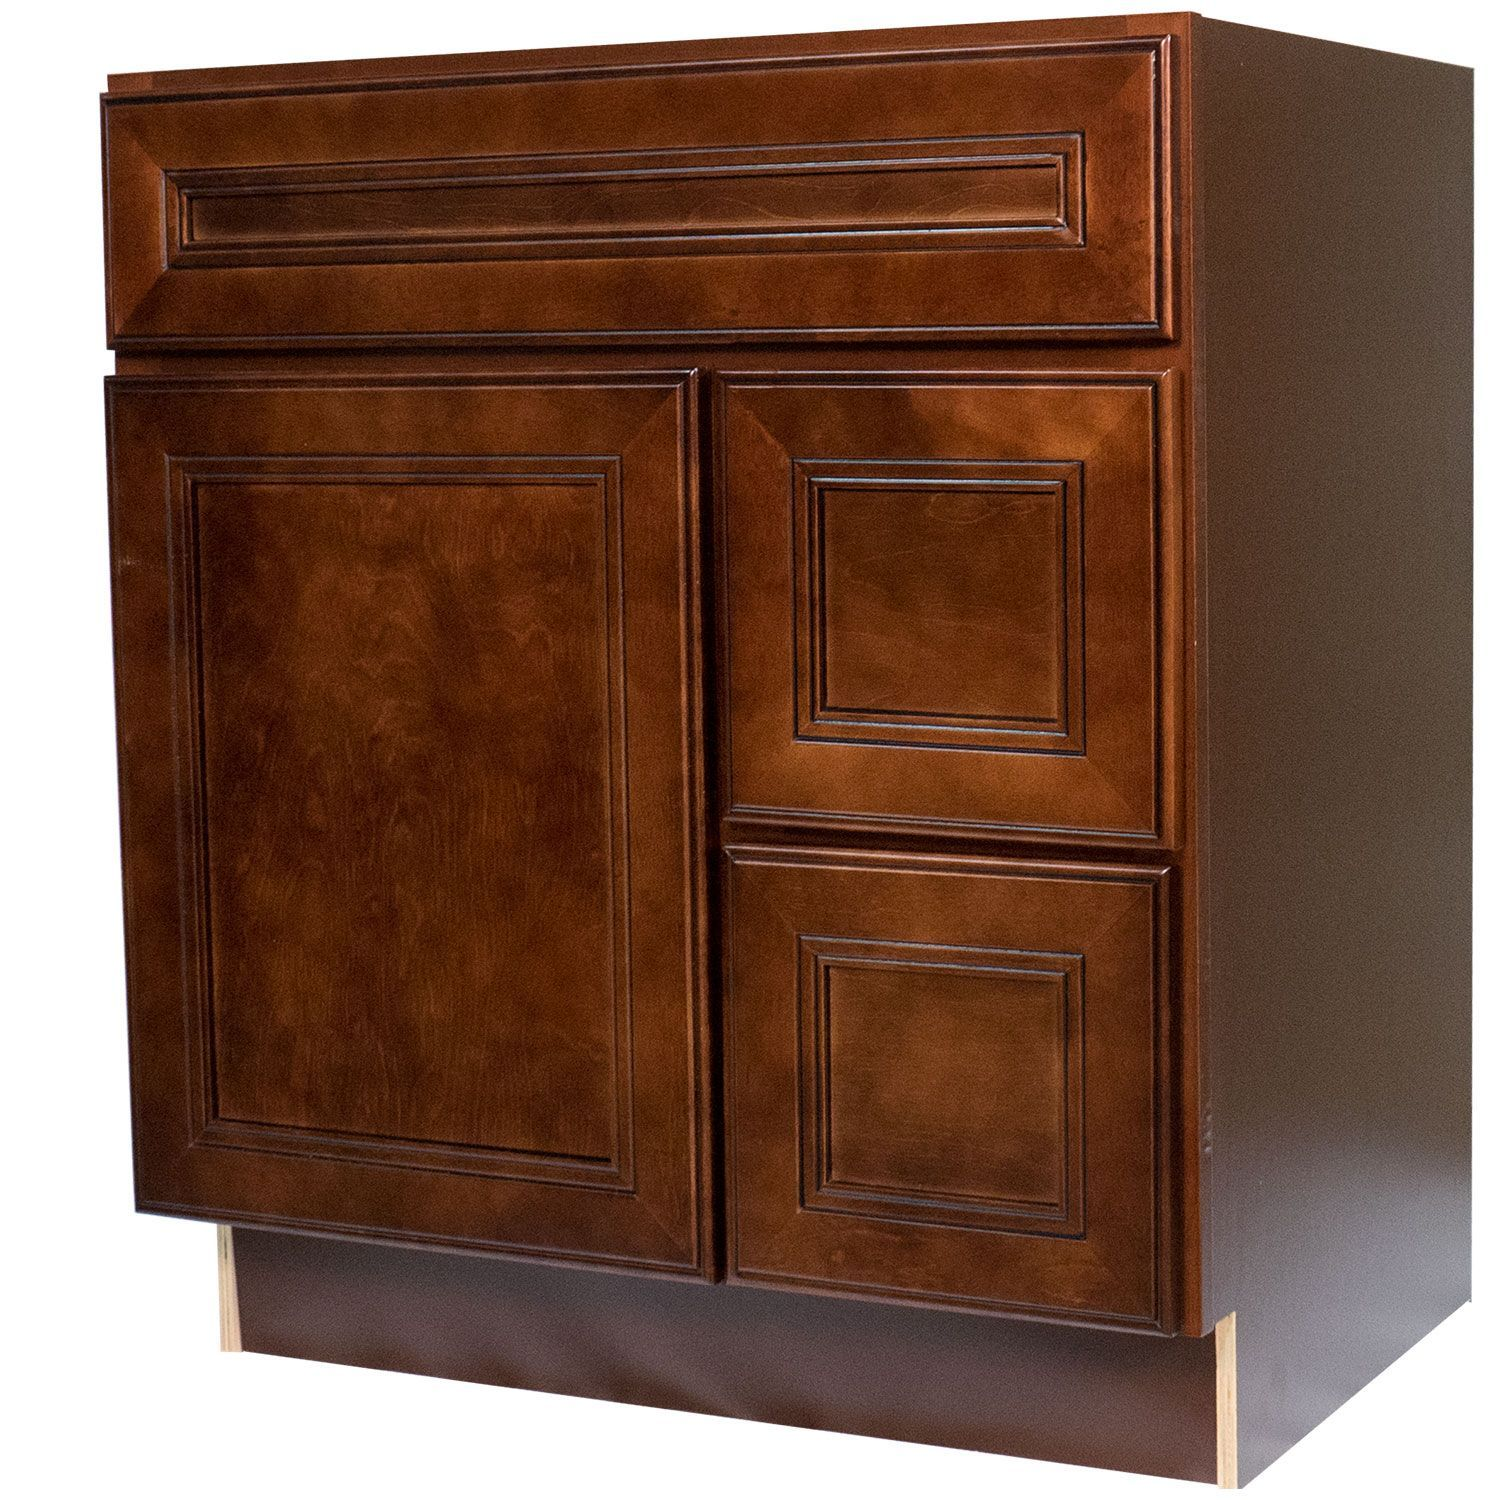 30 Inch Bathroom Vanity Single Sink Cabinet in Leo Saddle ...